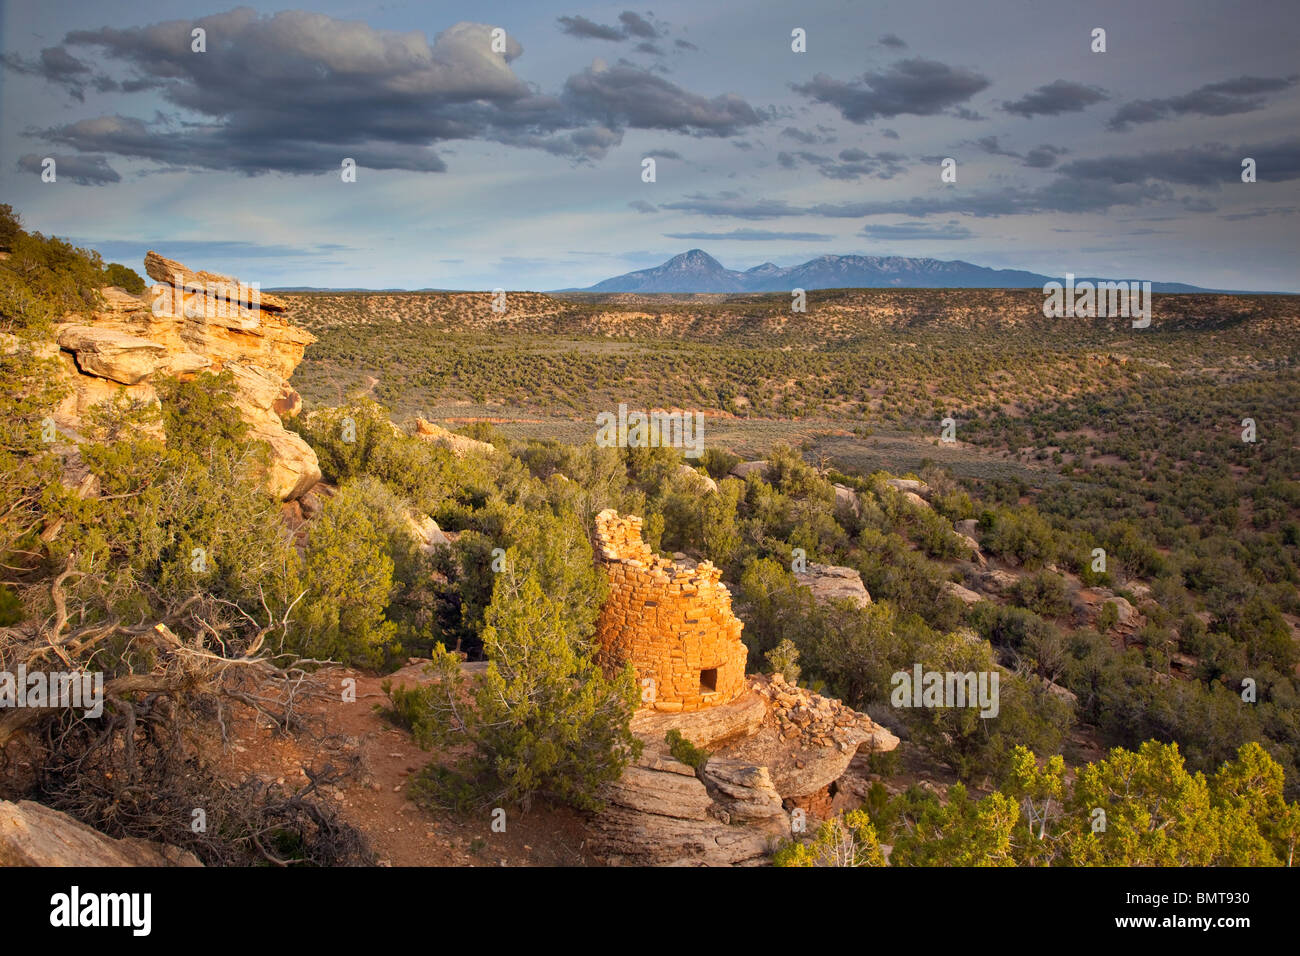 Ancient Puebloan tower at Painted Hand Pueblo, Canyons of the Ancients National Monument, west of Cortez, Colorado, - Stock Image